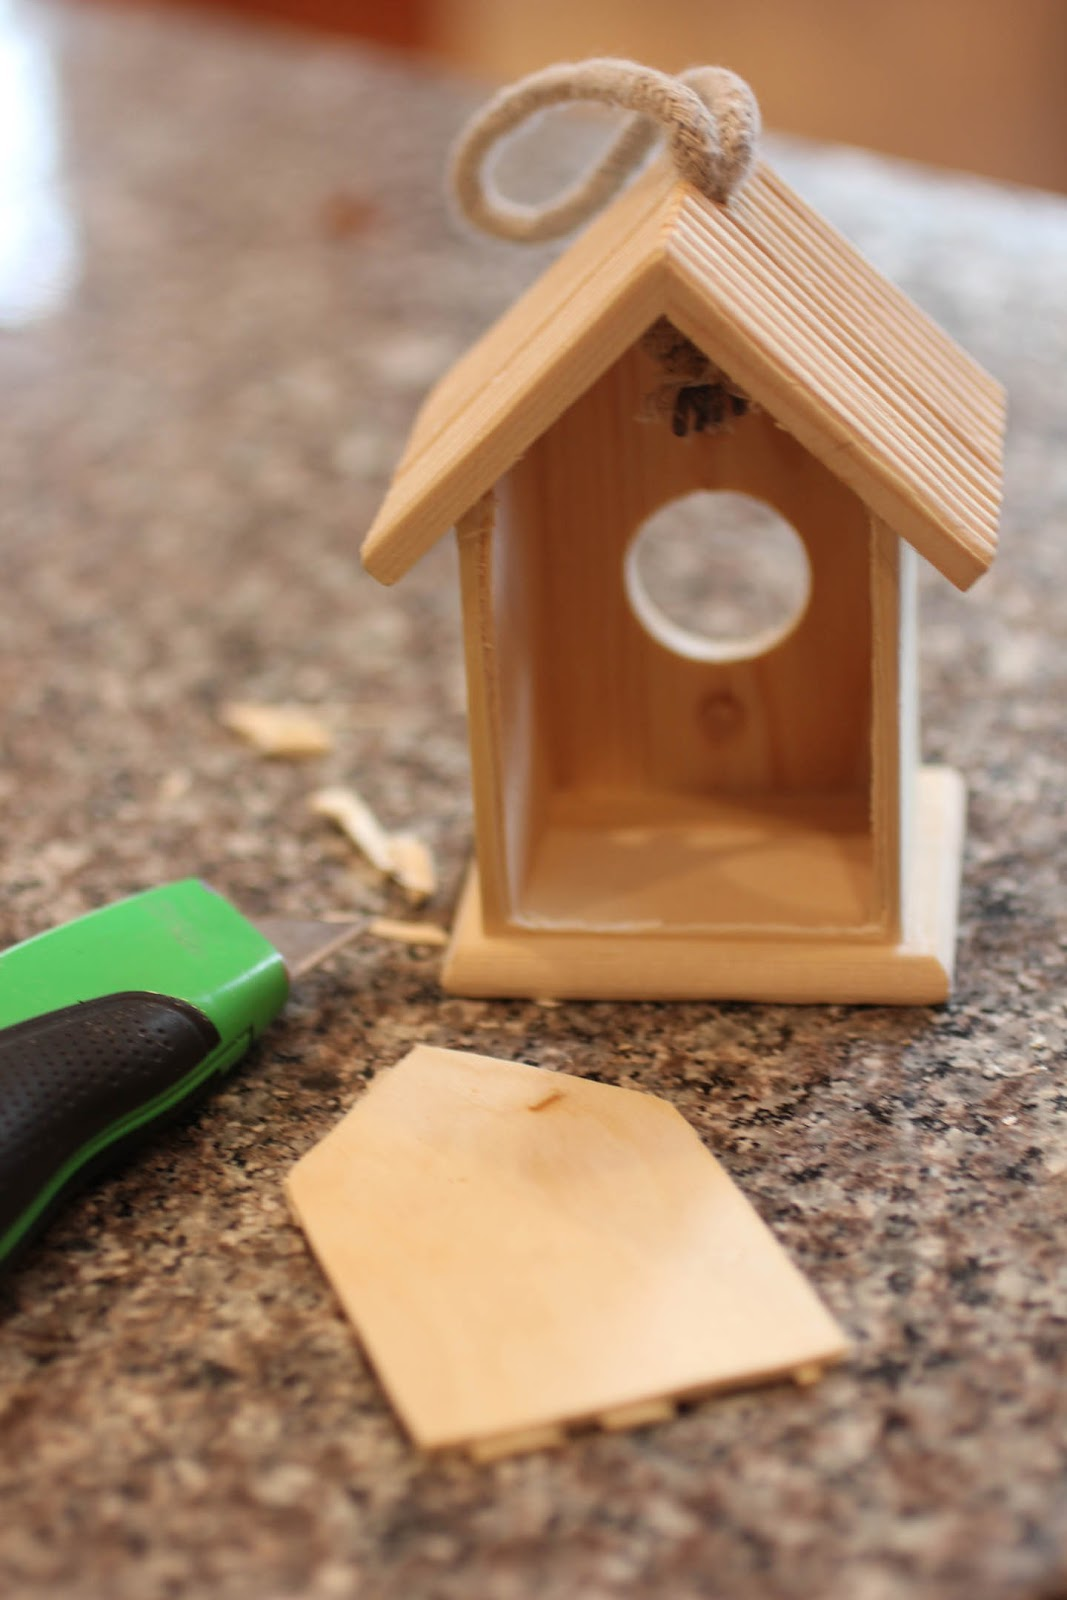 Window bird house -  Cut The Back Off The House To Make A Wall We Could See Through The Wood Was Thin On The Back And I Was Able To Cut It With A Box Cutter